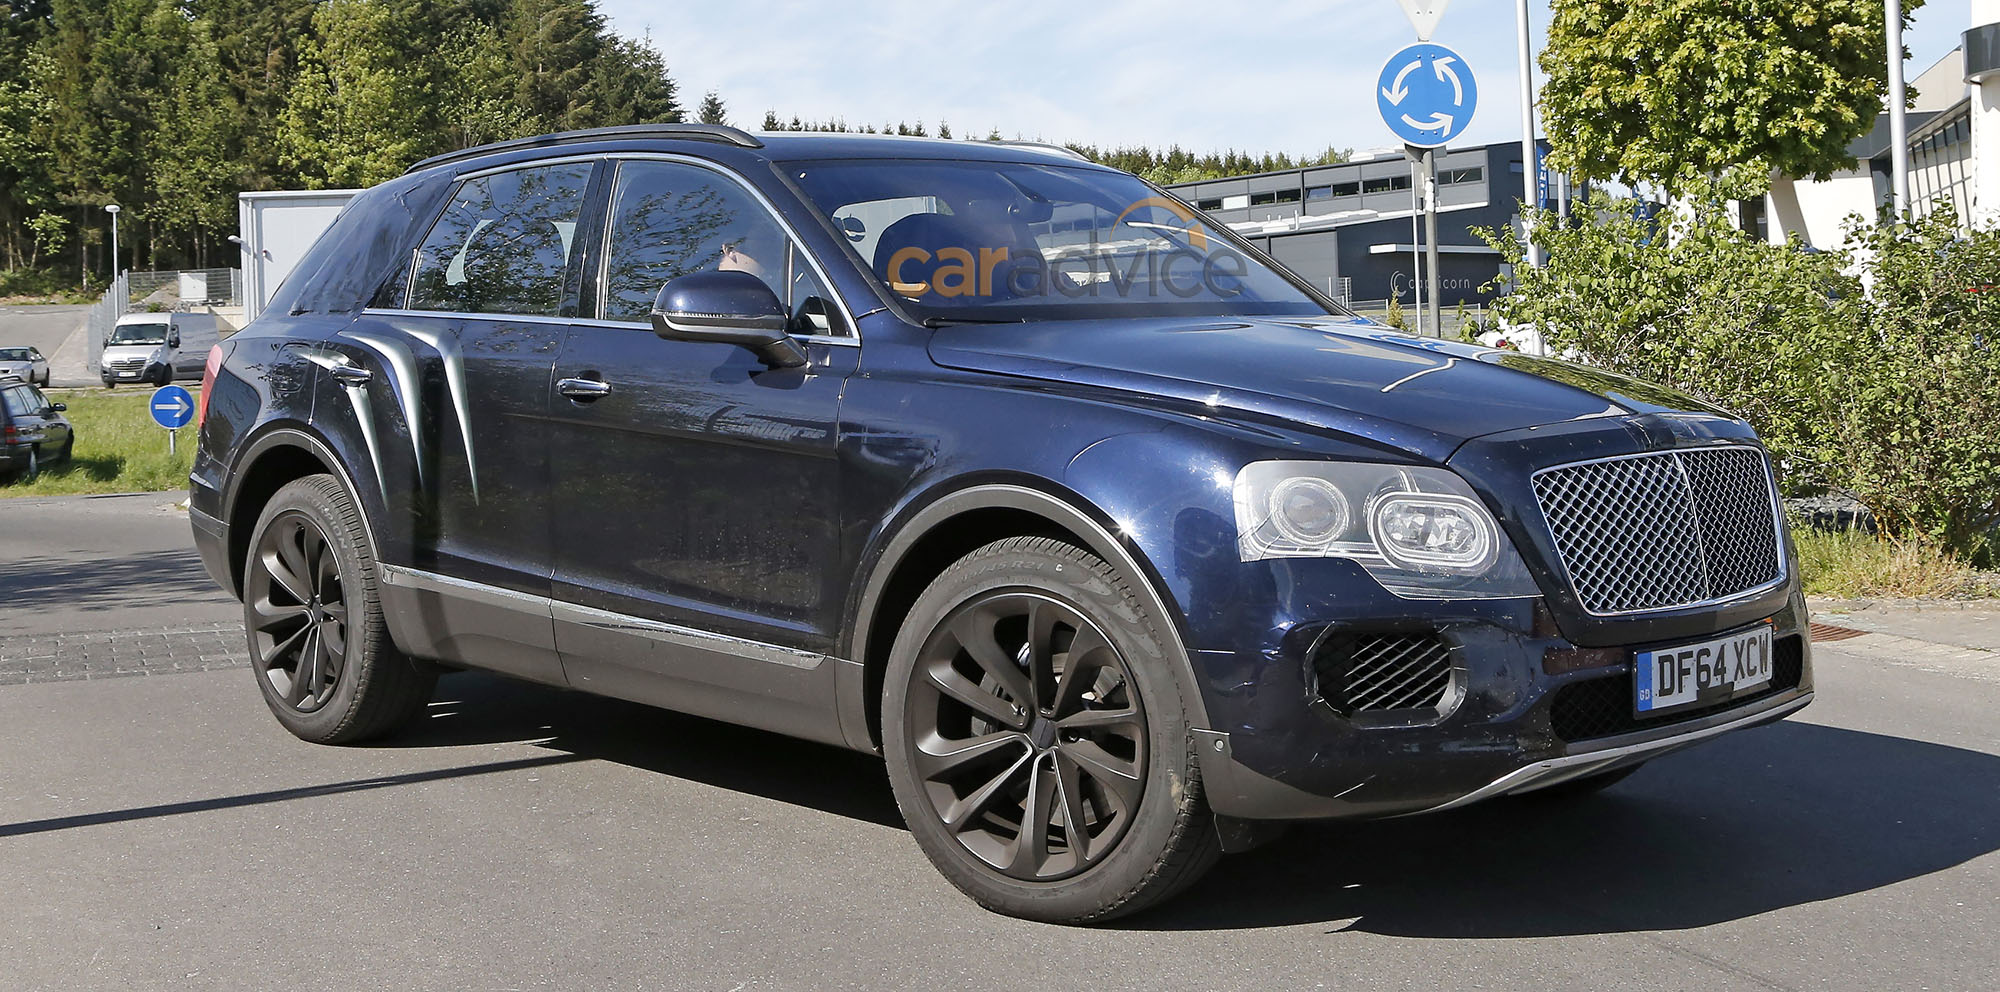 Bentley Bentayga Spied Practically Production Ready